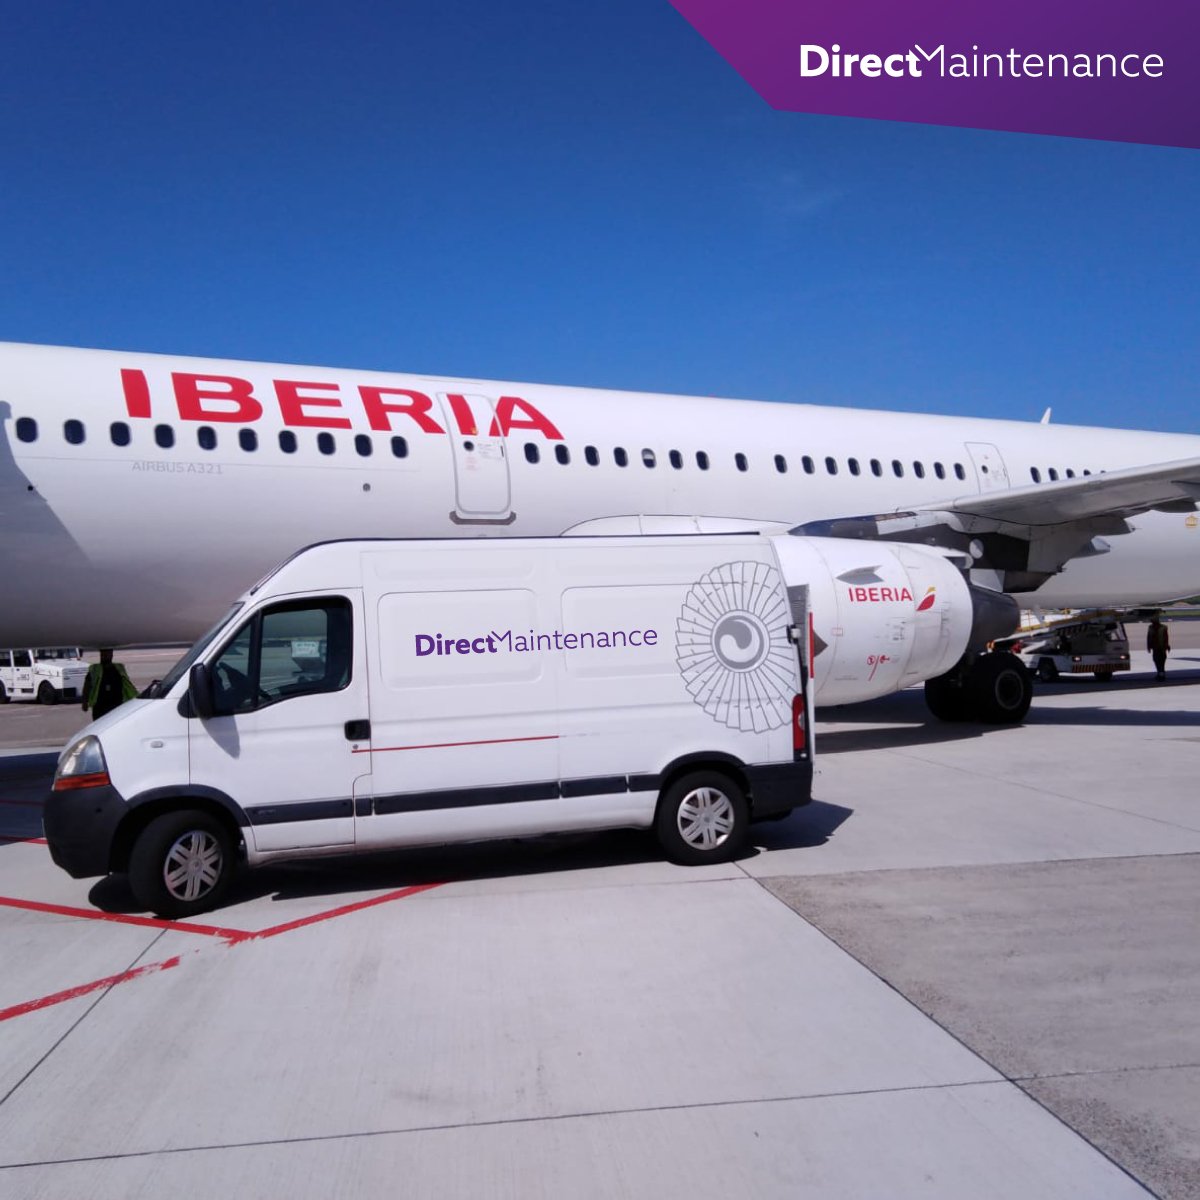 Direct Maintenance partners with Iberia at Düsseldorf (DUS) station